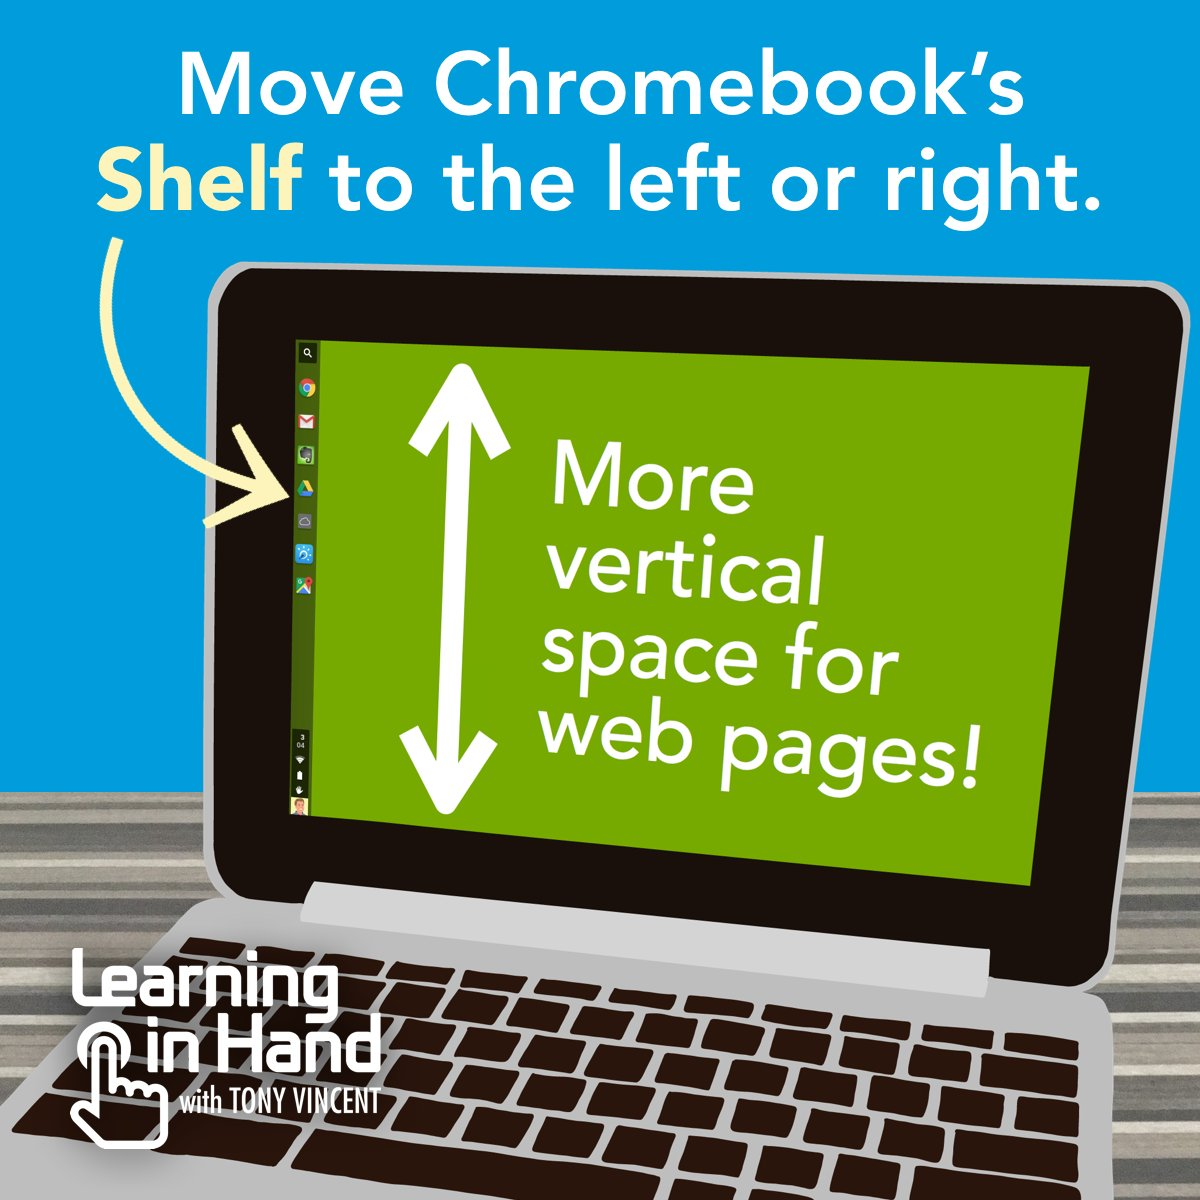 ↕️ I prefer to move my Chromebook's Shelf to the left. I like having more vertical space for web pages. https://t.co/NqSBHBxE50